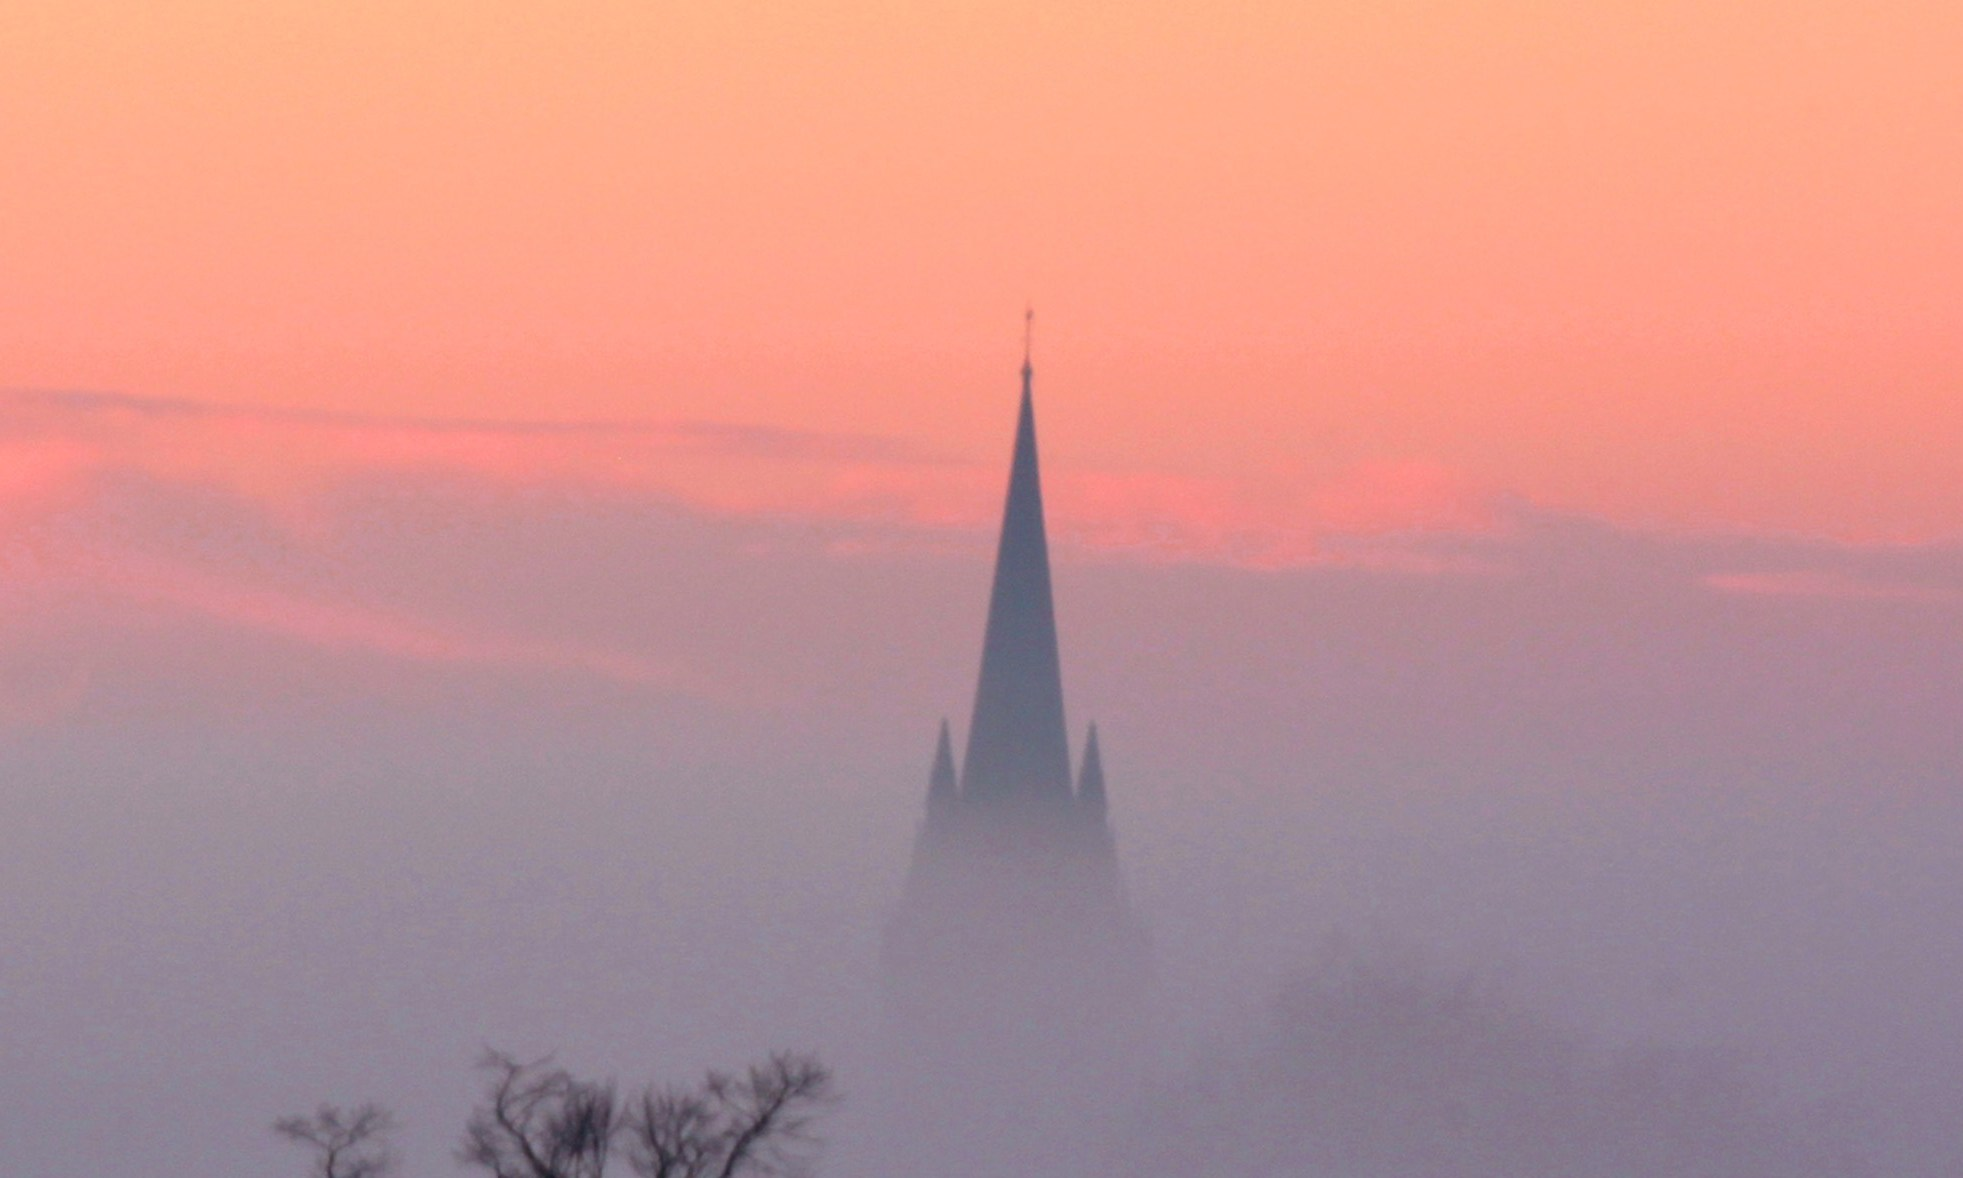 Oxford Spires - November by Tejvan Pettinger